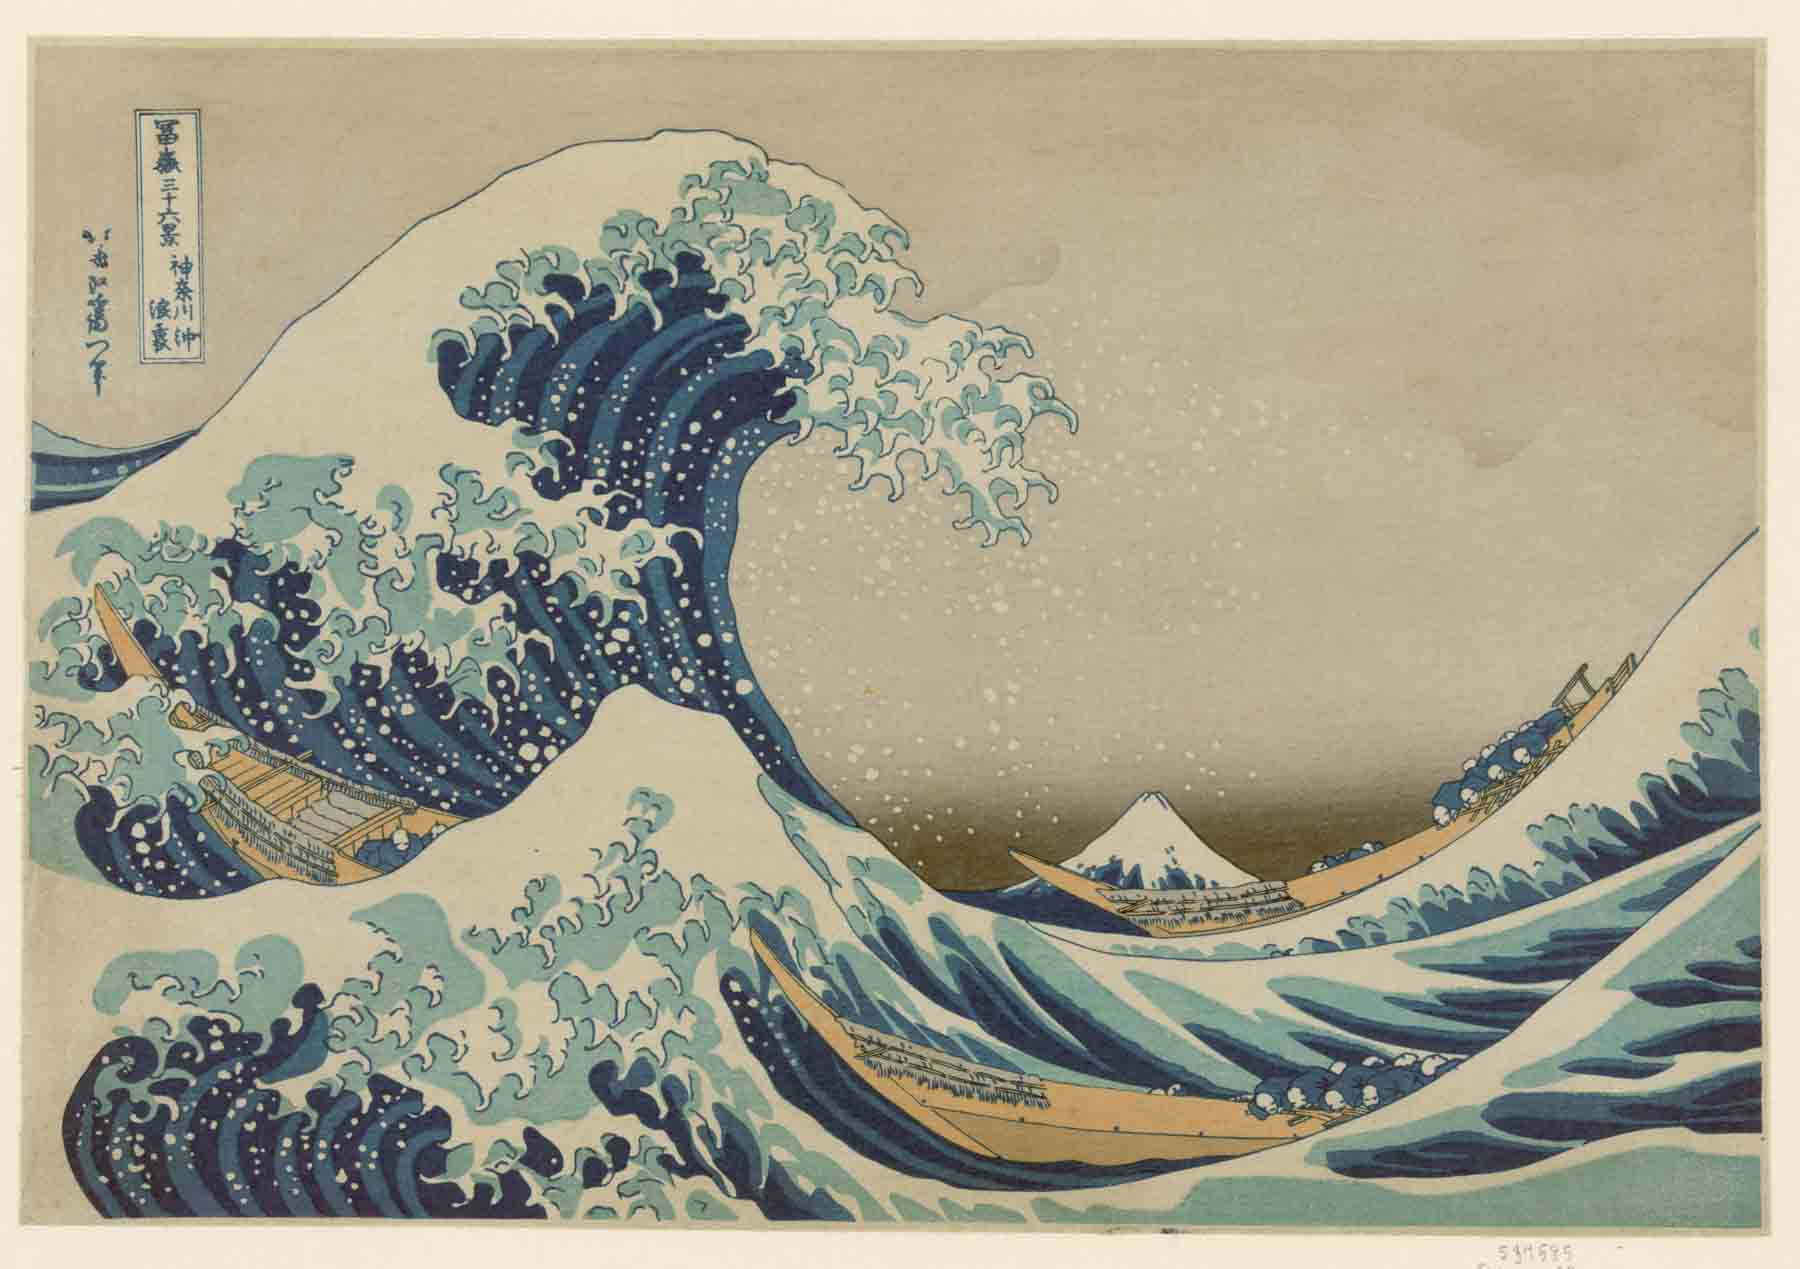 Kanagawa oki nami ura. The great wave off shore of Kanagawa. Katsushika, Hokusai, 1760-1849, artist. Print shows a huge wave bearing down on boats with a view of Mount Fuji in the background.